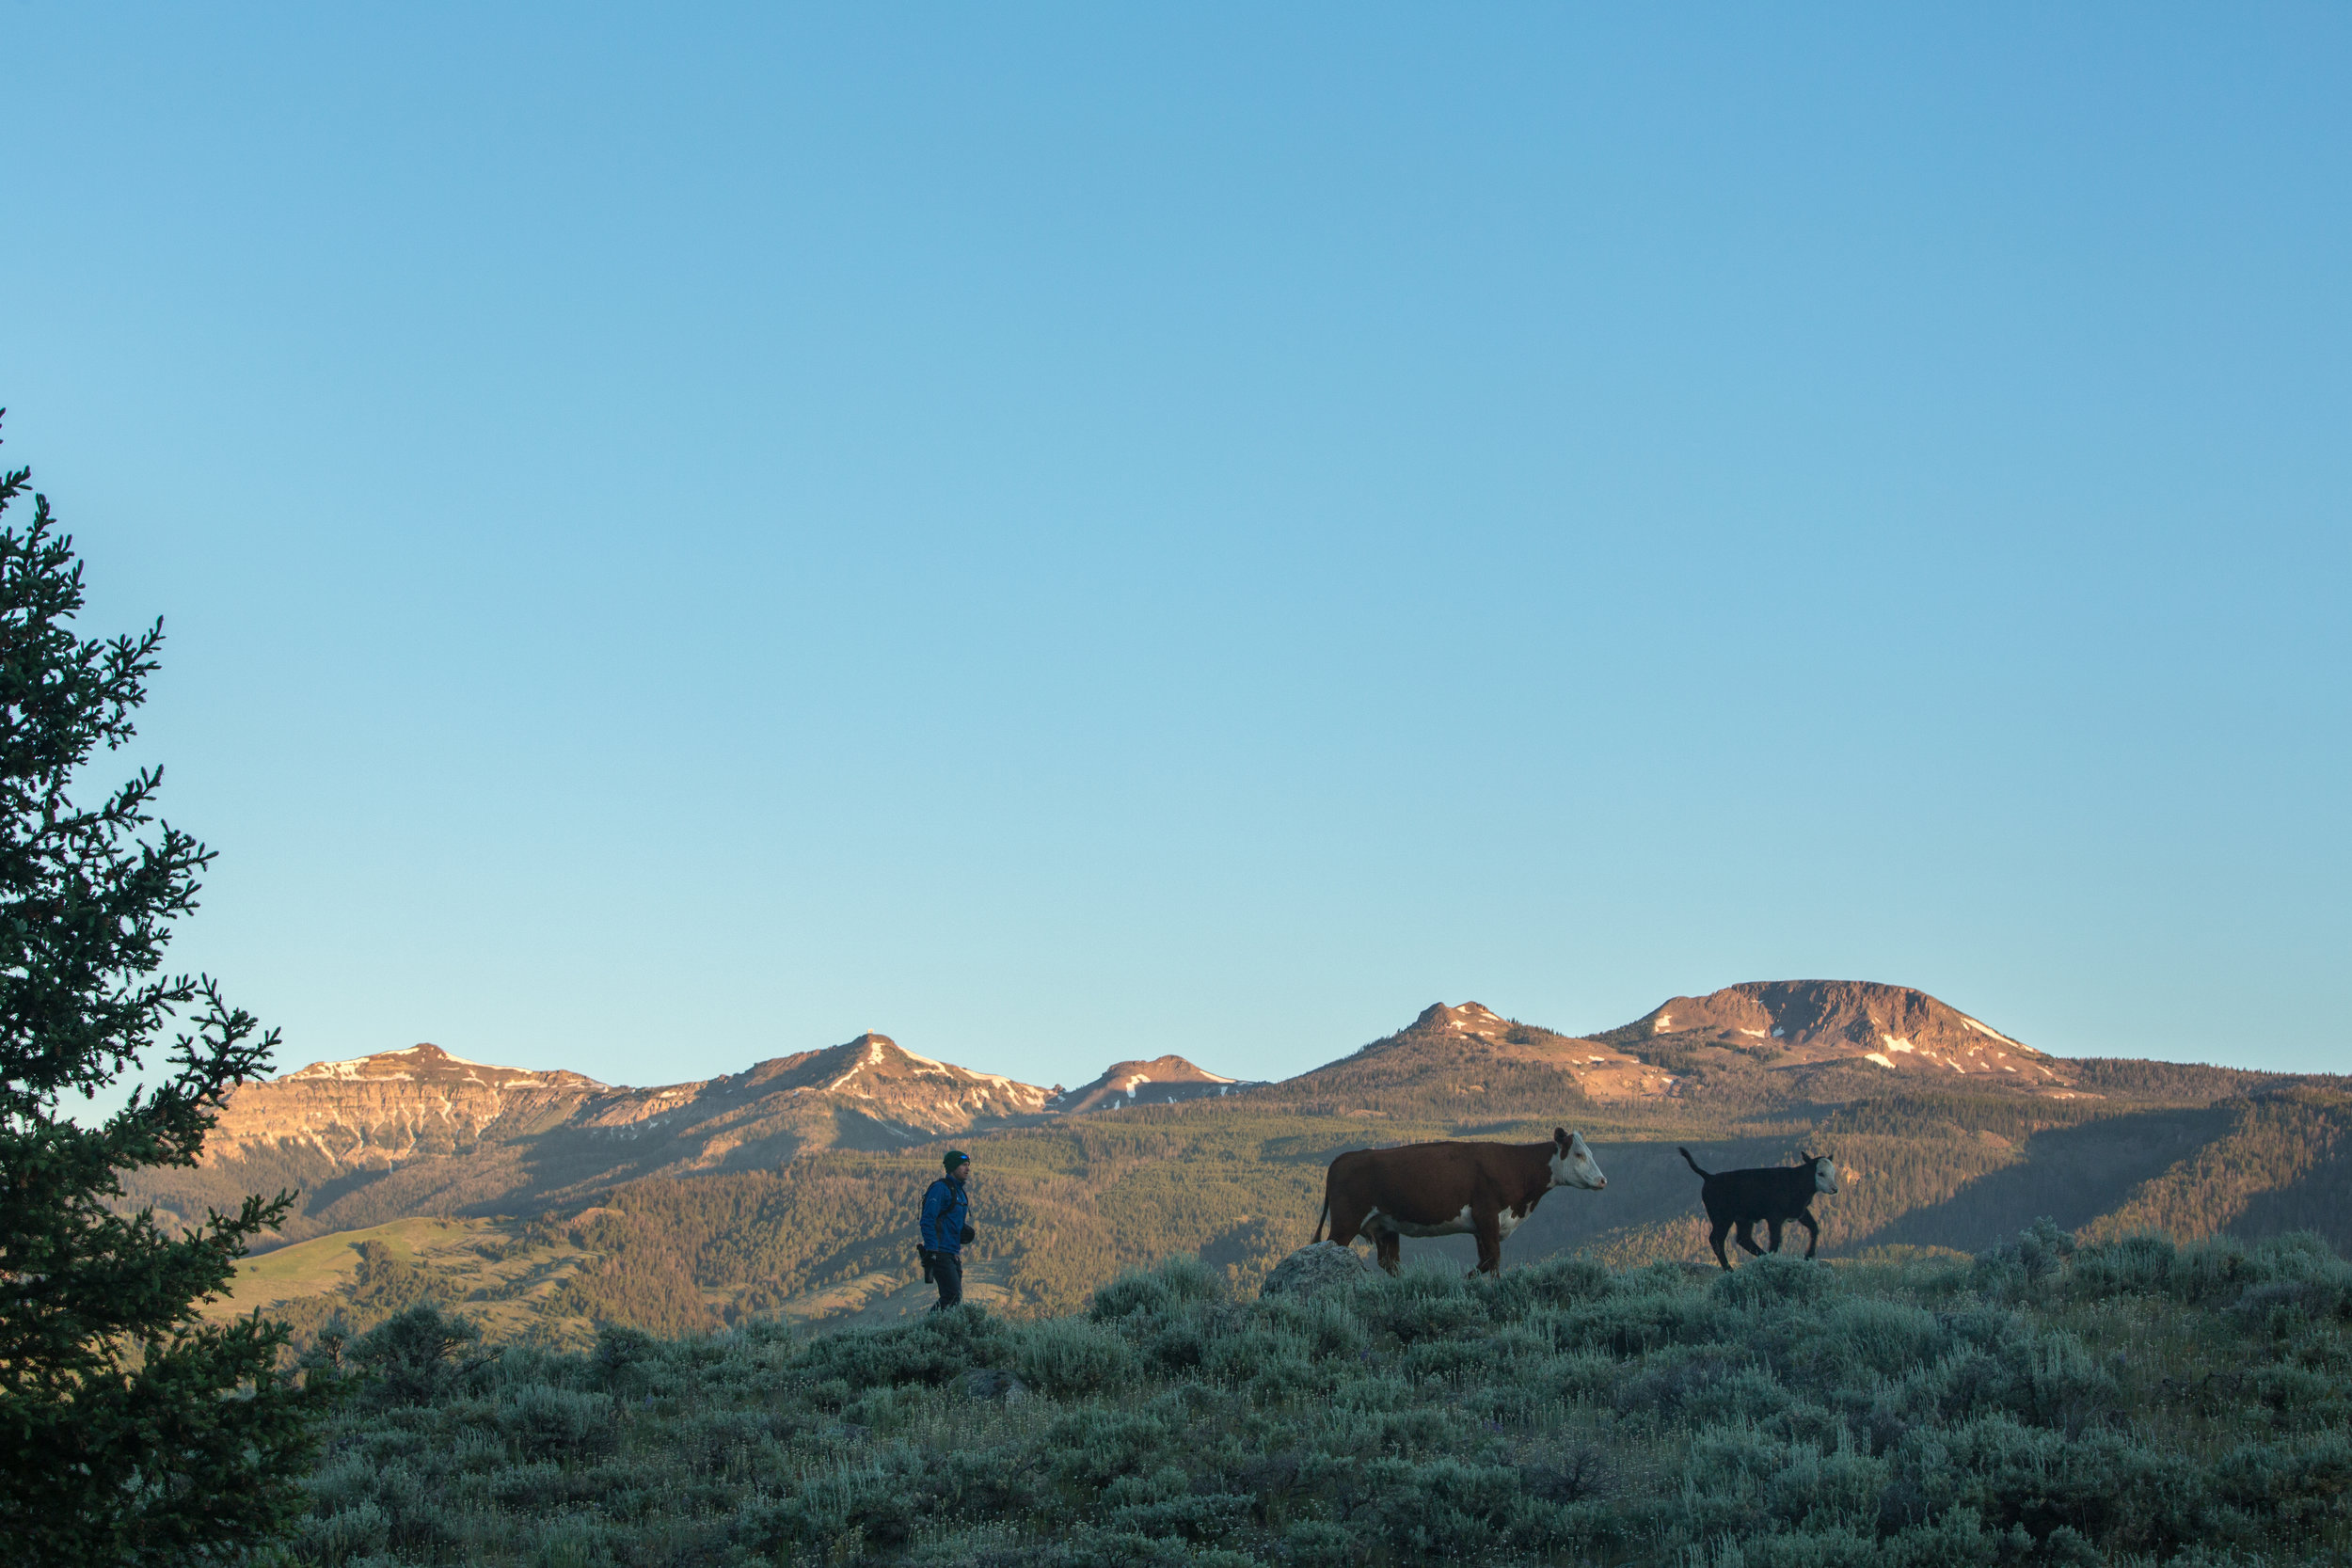 A Tom Miner Basin range rider checks on cattle in early summer.  Tom Miner Basin is 19 miles northwest of Gardiner, Montana - a boundary to Yellowstone National Park. It is home to a resident pack of wolves, and several resident adult grizzly bears. There are five working ranches located in the upper portion of the Tom Miner Basin.